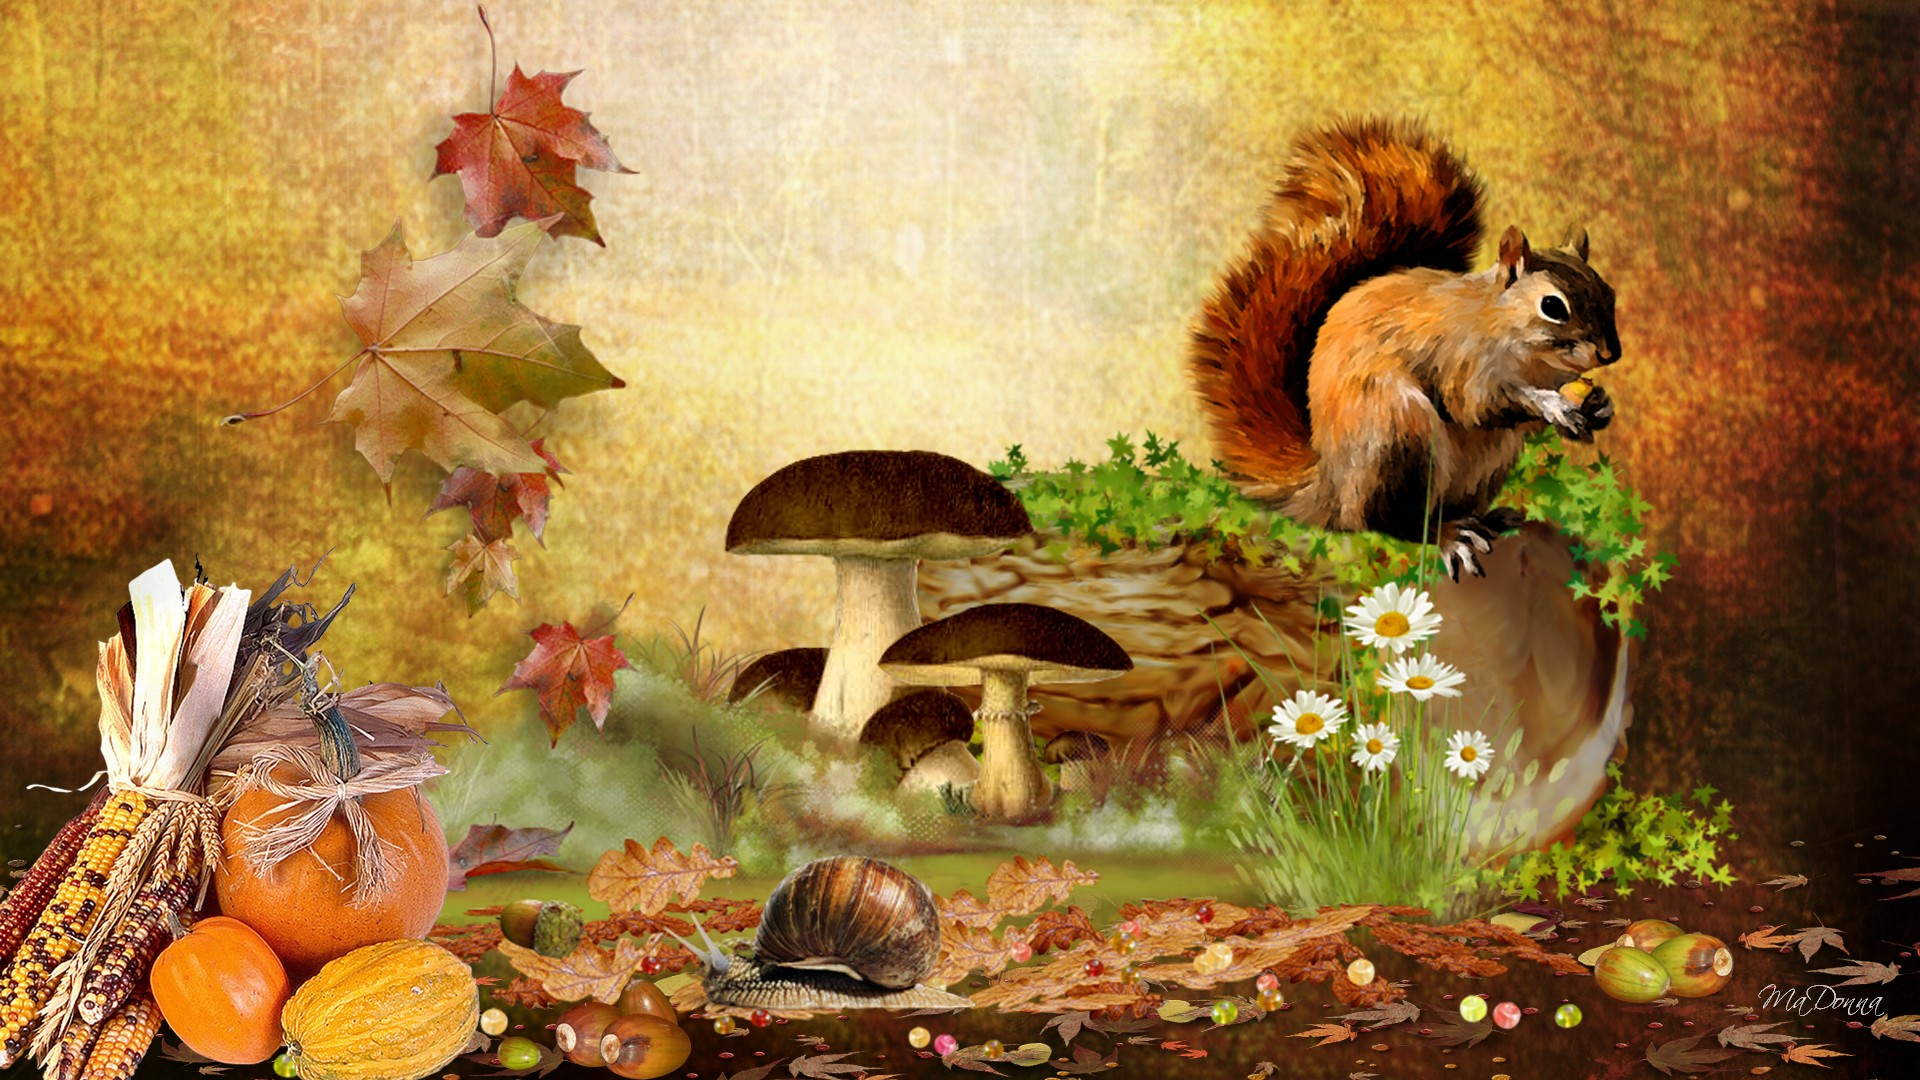 Fall Wallpapers For Android (16 Wallpapers) - Adorable ...